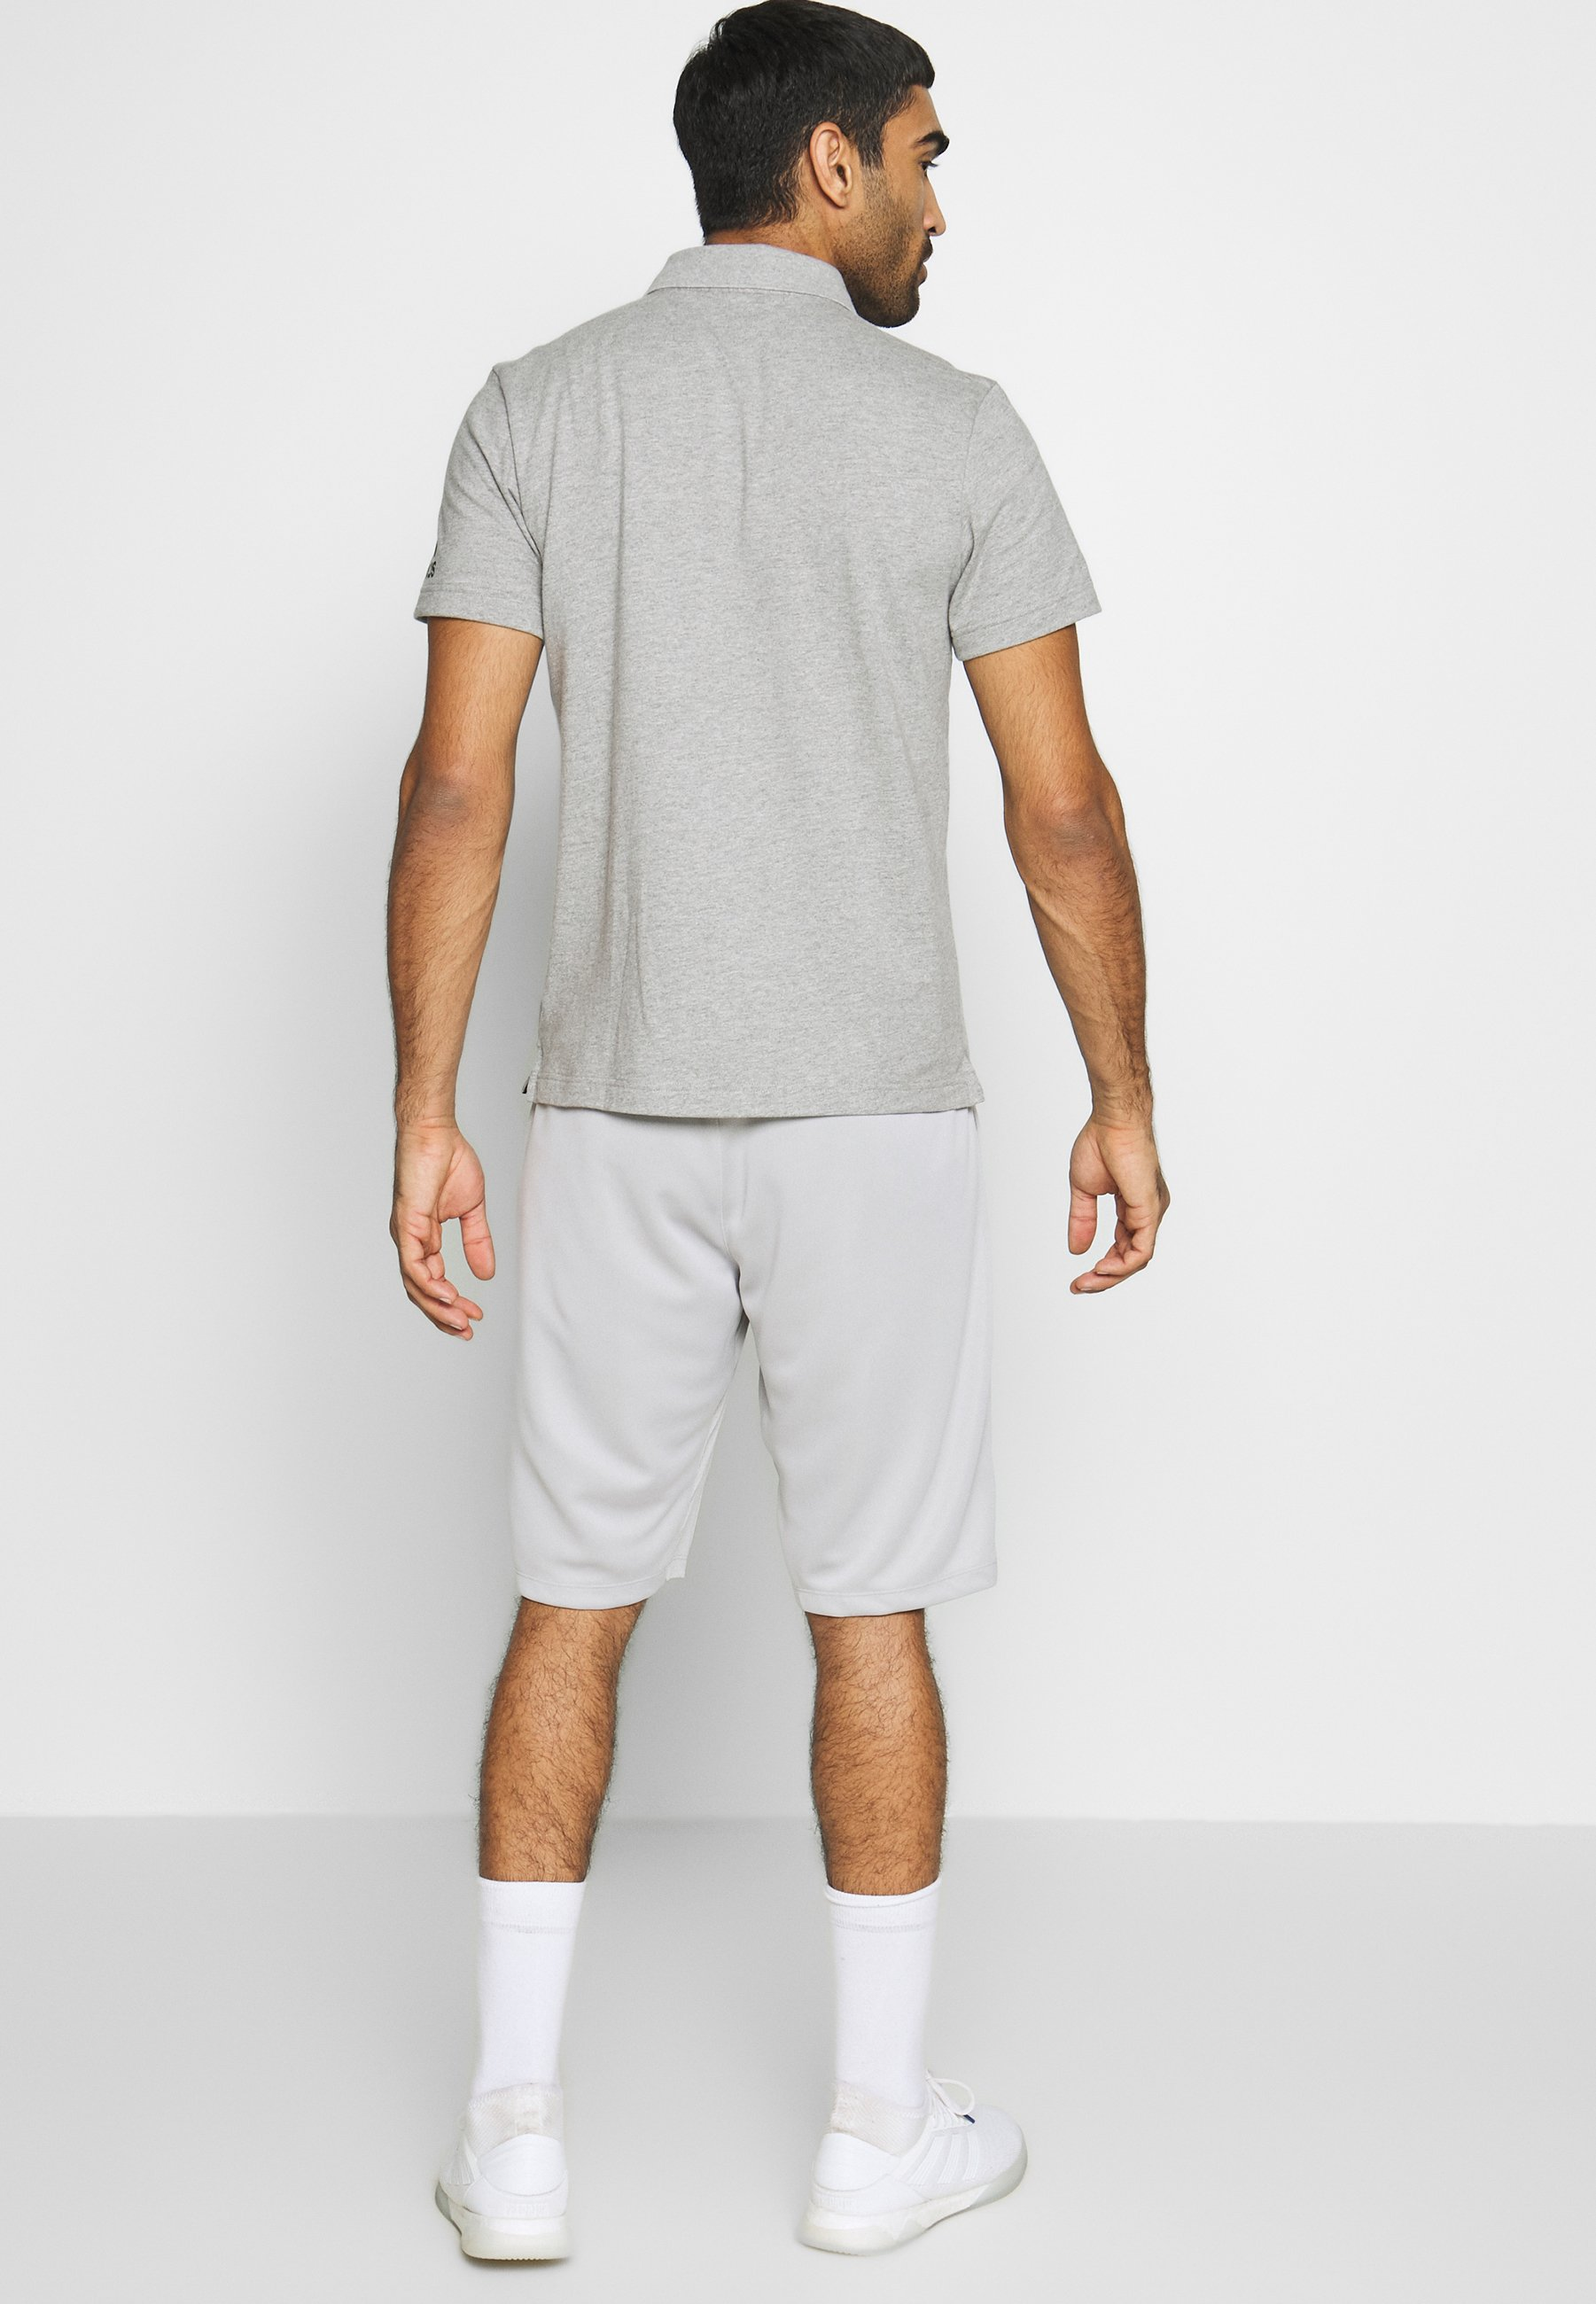 Adidas Performance City Long Short - Träningsshorts Grey